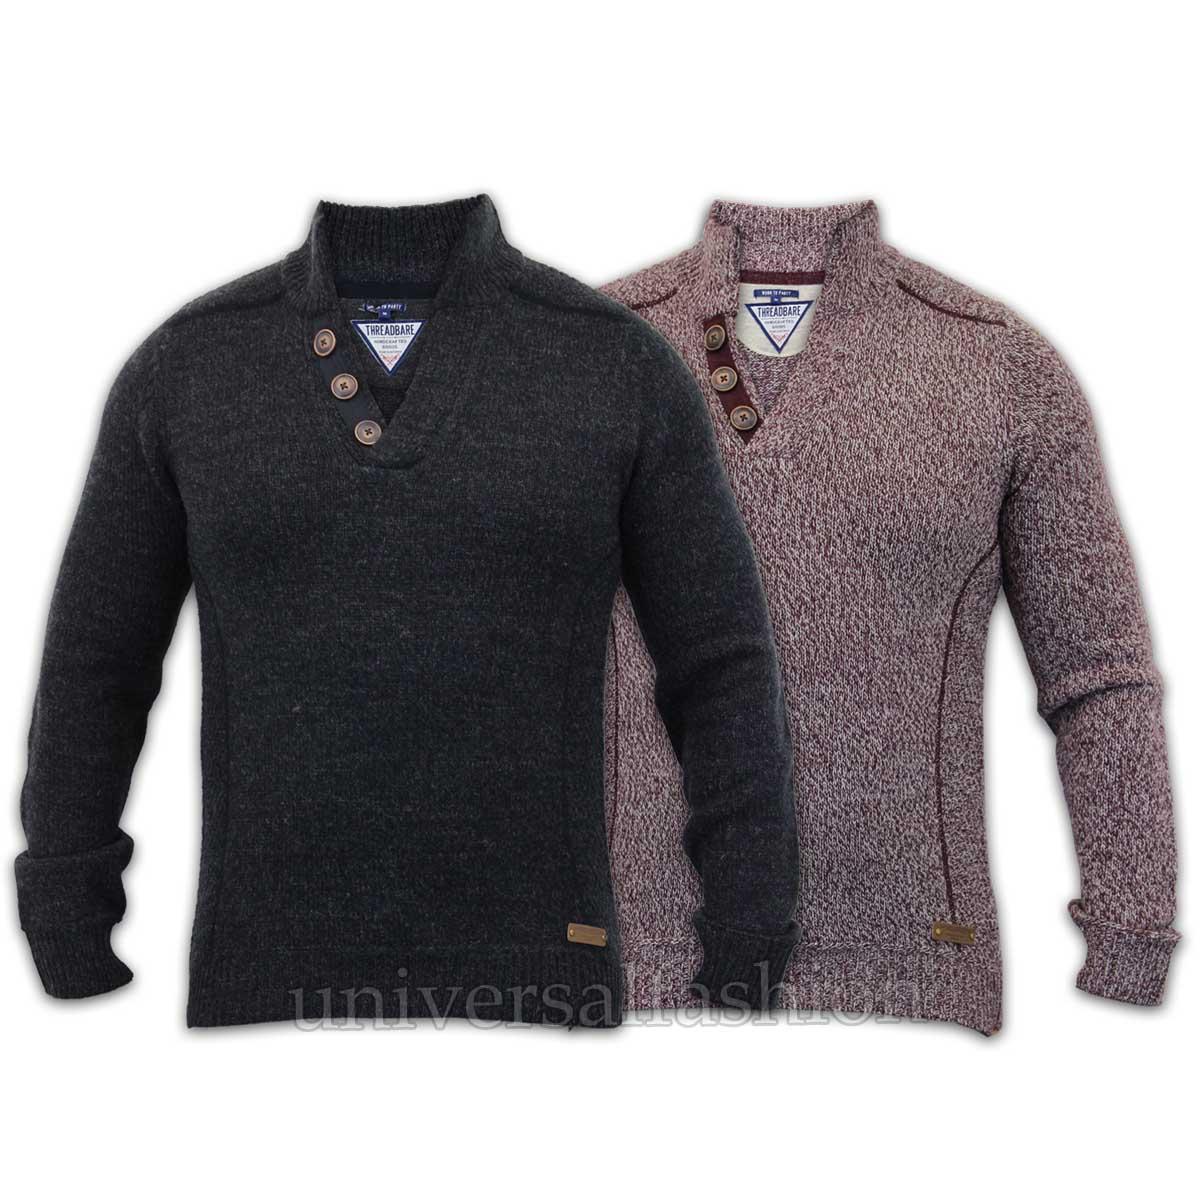 Mens-Jumper-Threadbare-Wool-Mix-Knitted-Pullover-Top-Sweater-Casual-Winter-New thumbnail 4